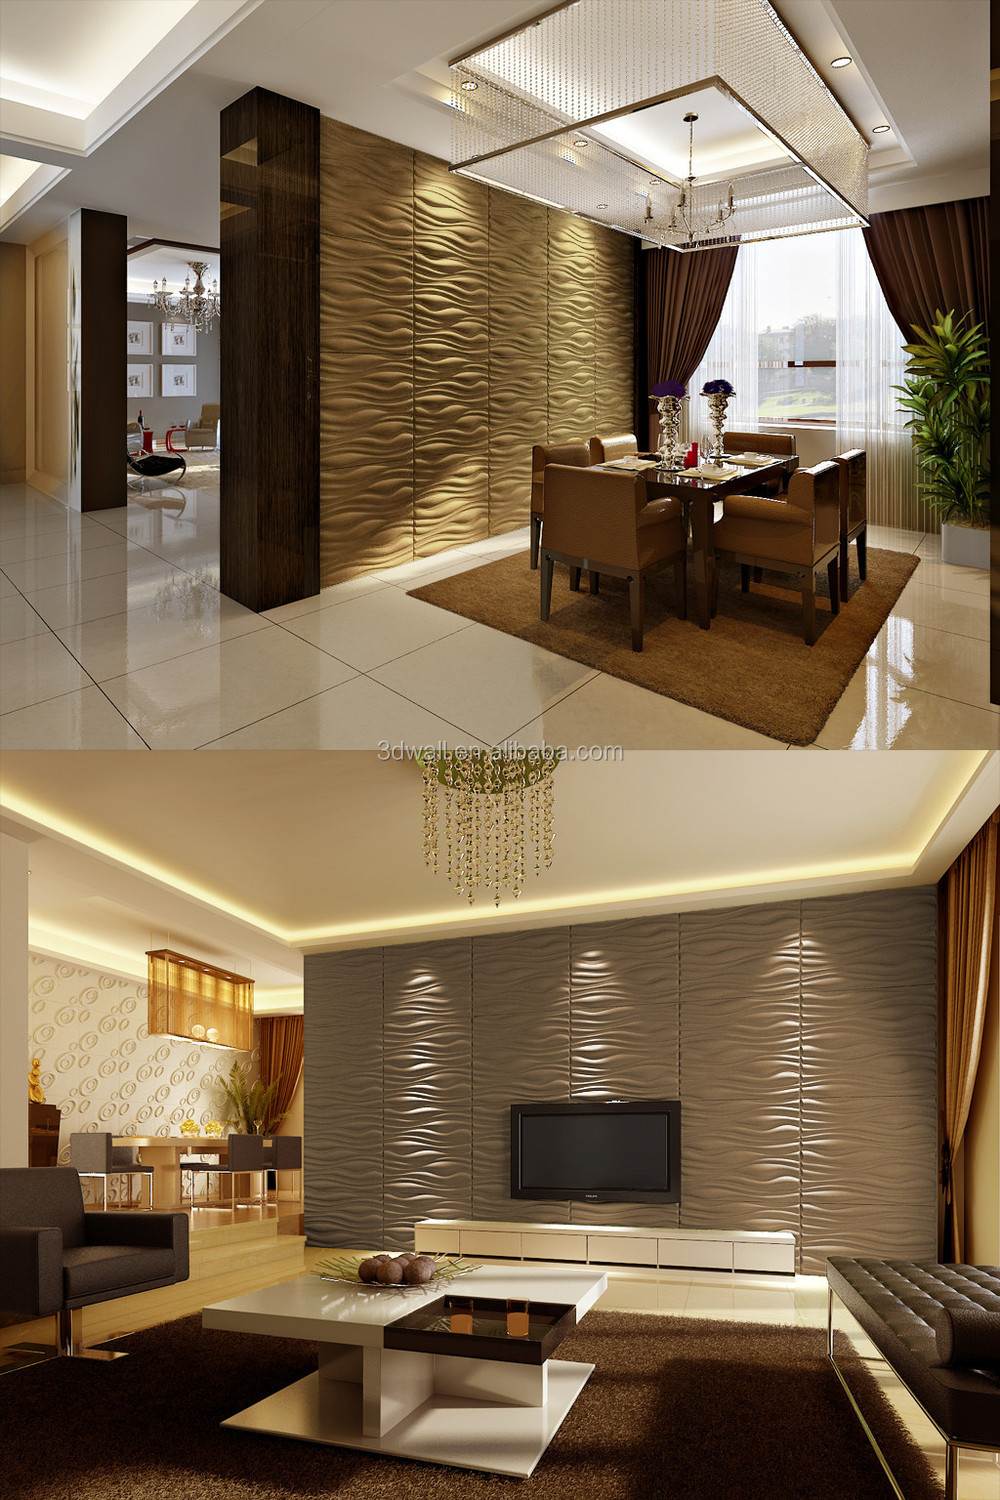 Waterproof Plant Fibre 3d Wall Panel False Ceiling Materials Buy False Ceiling Materials Boat